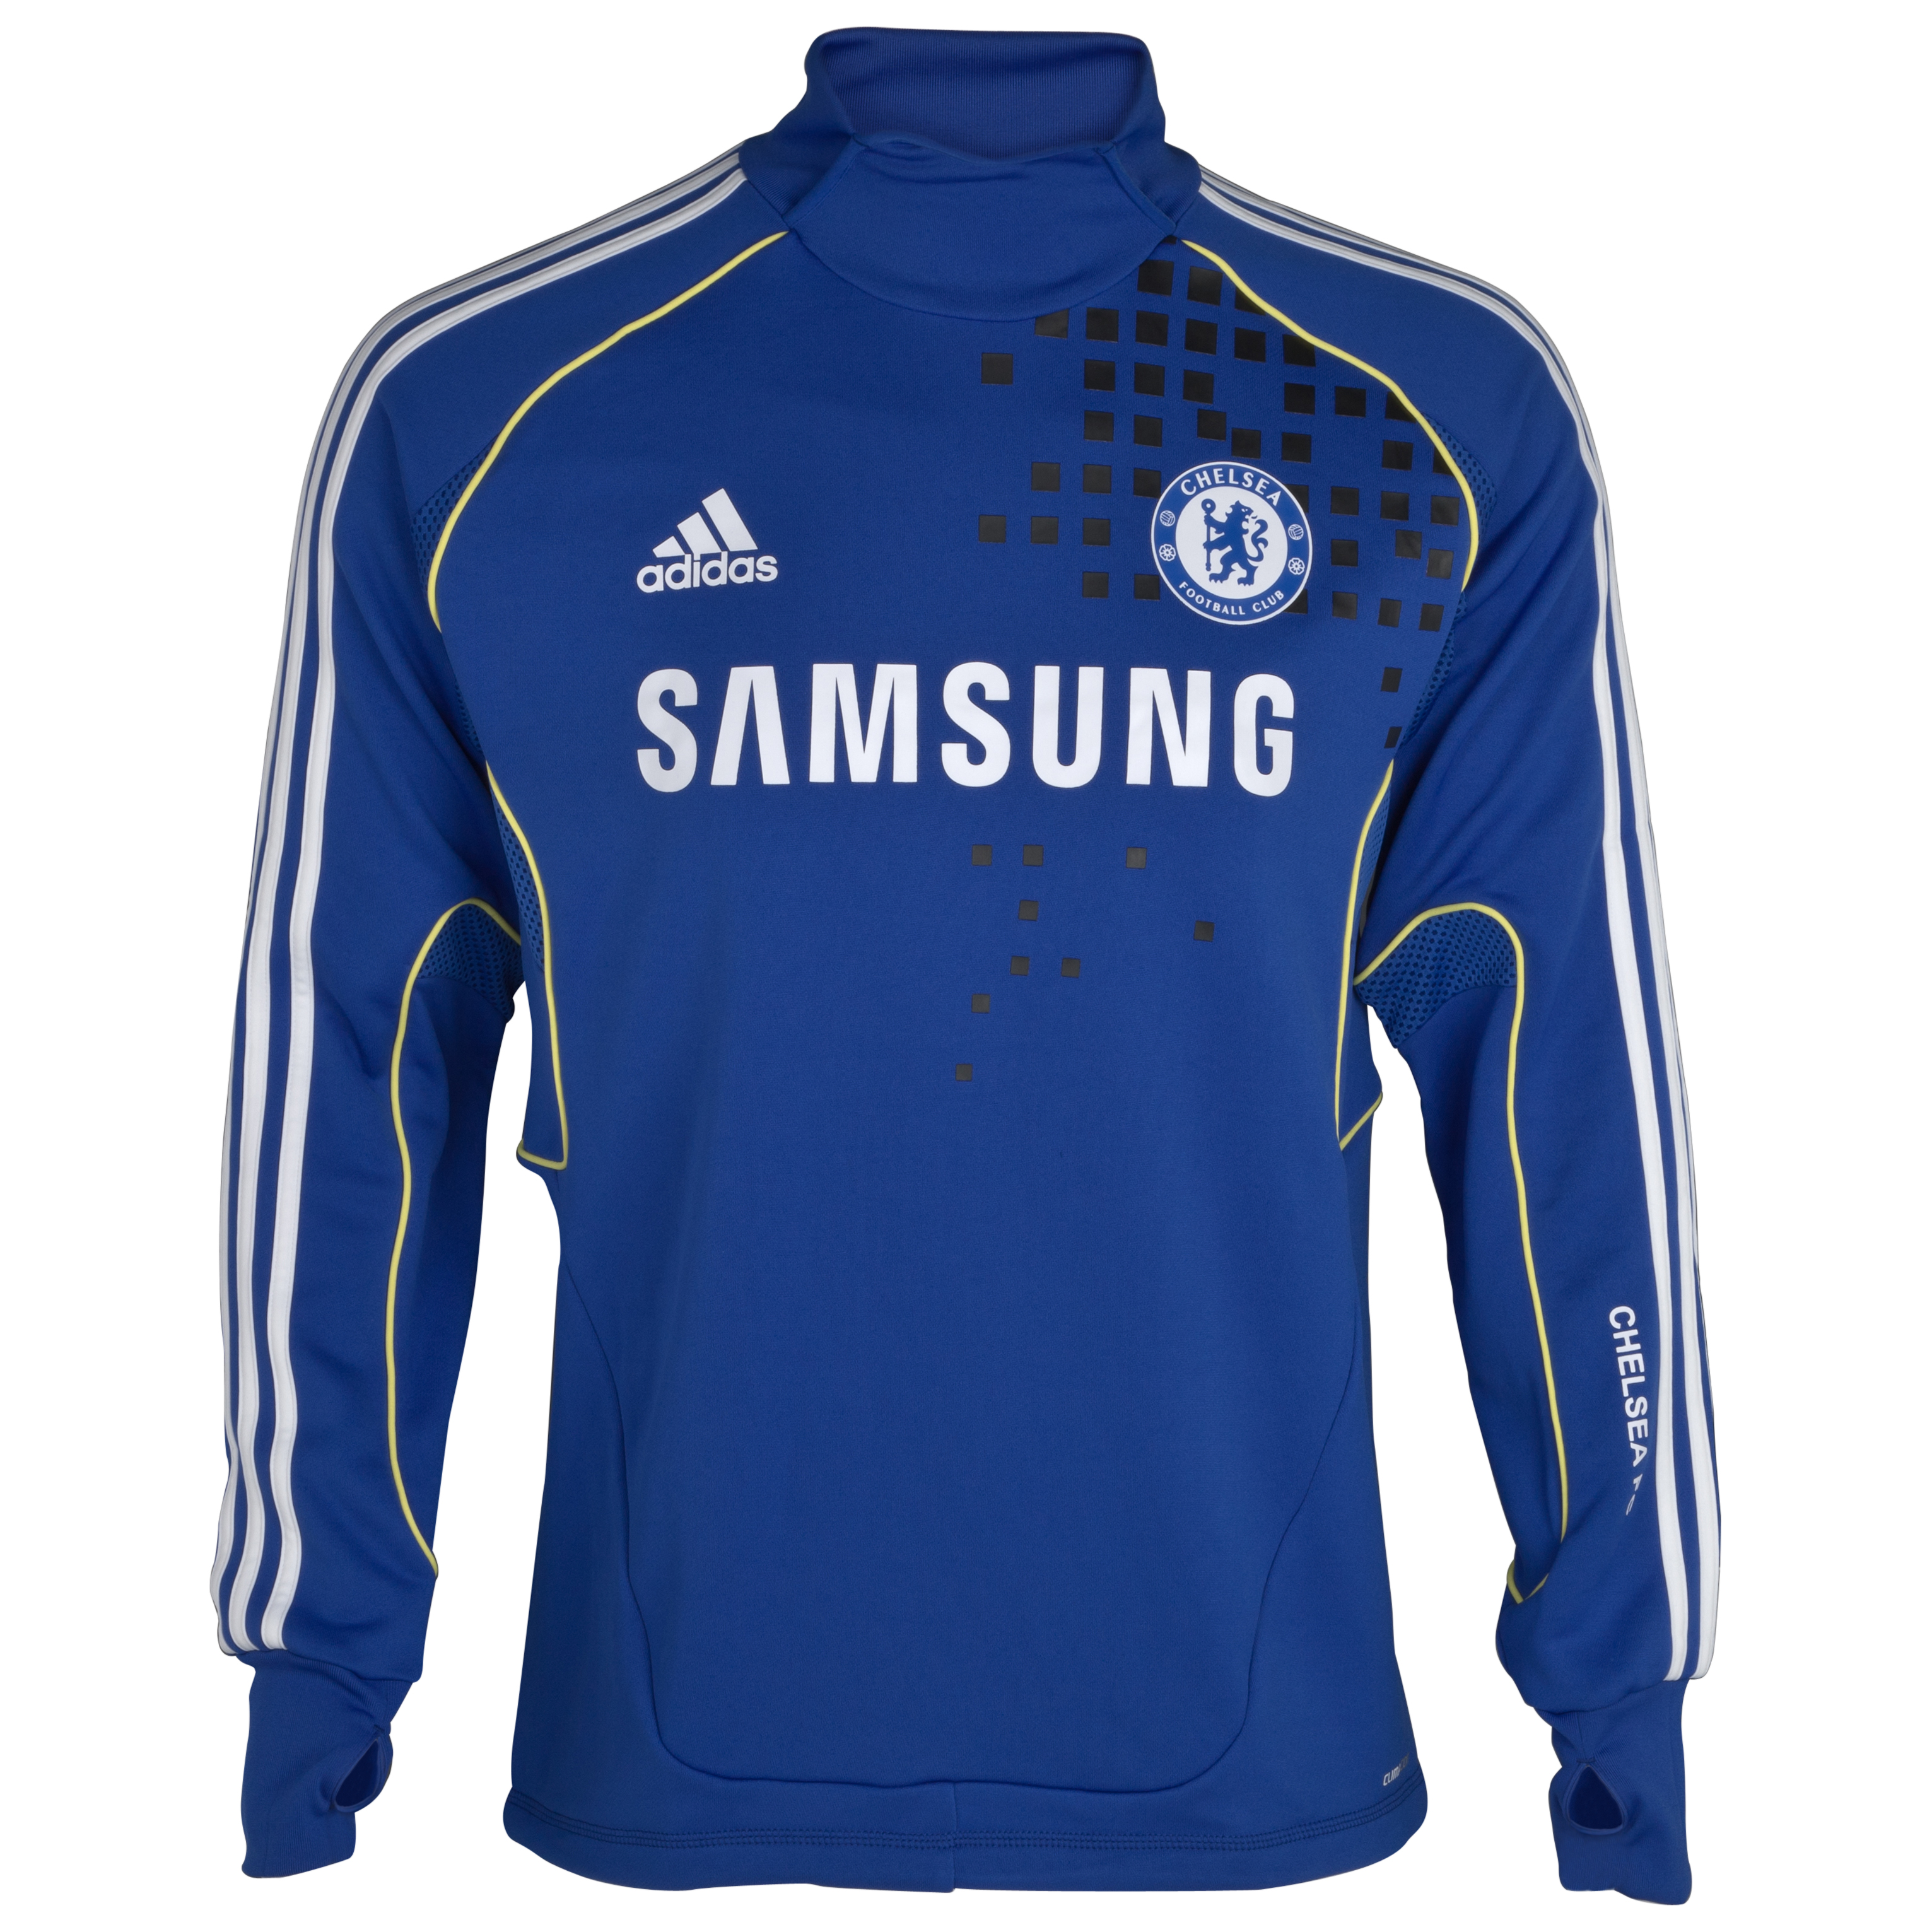 Chelsea Training Top - Reflex Blue/white/lemon/black